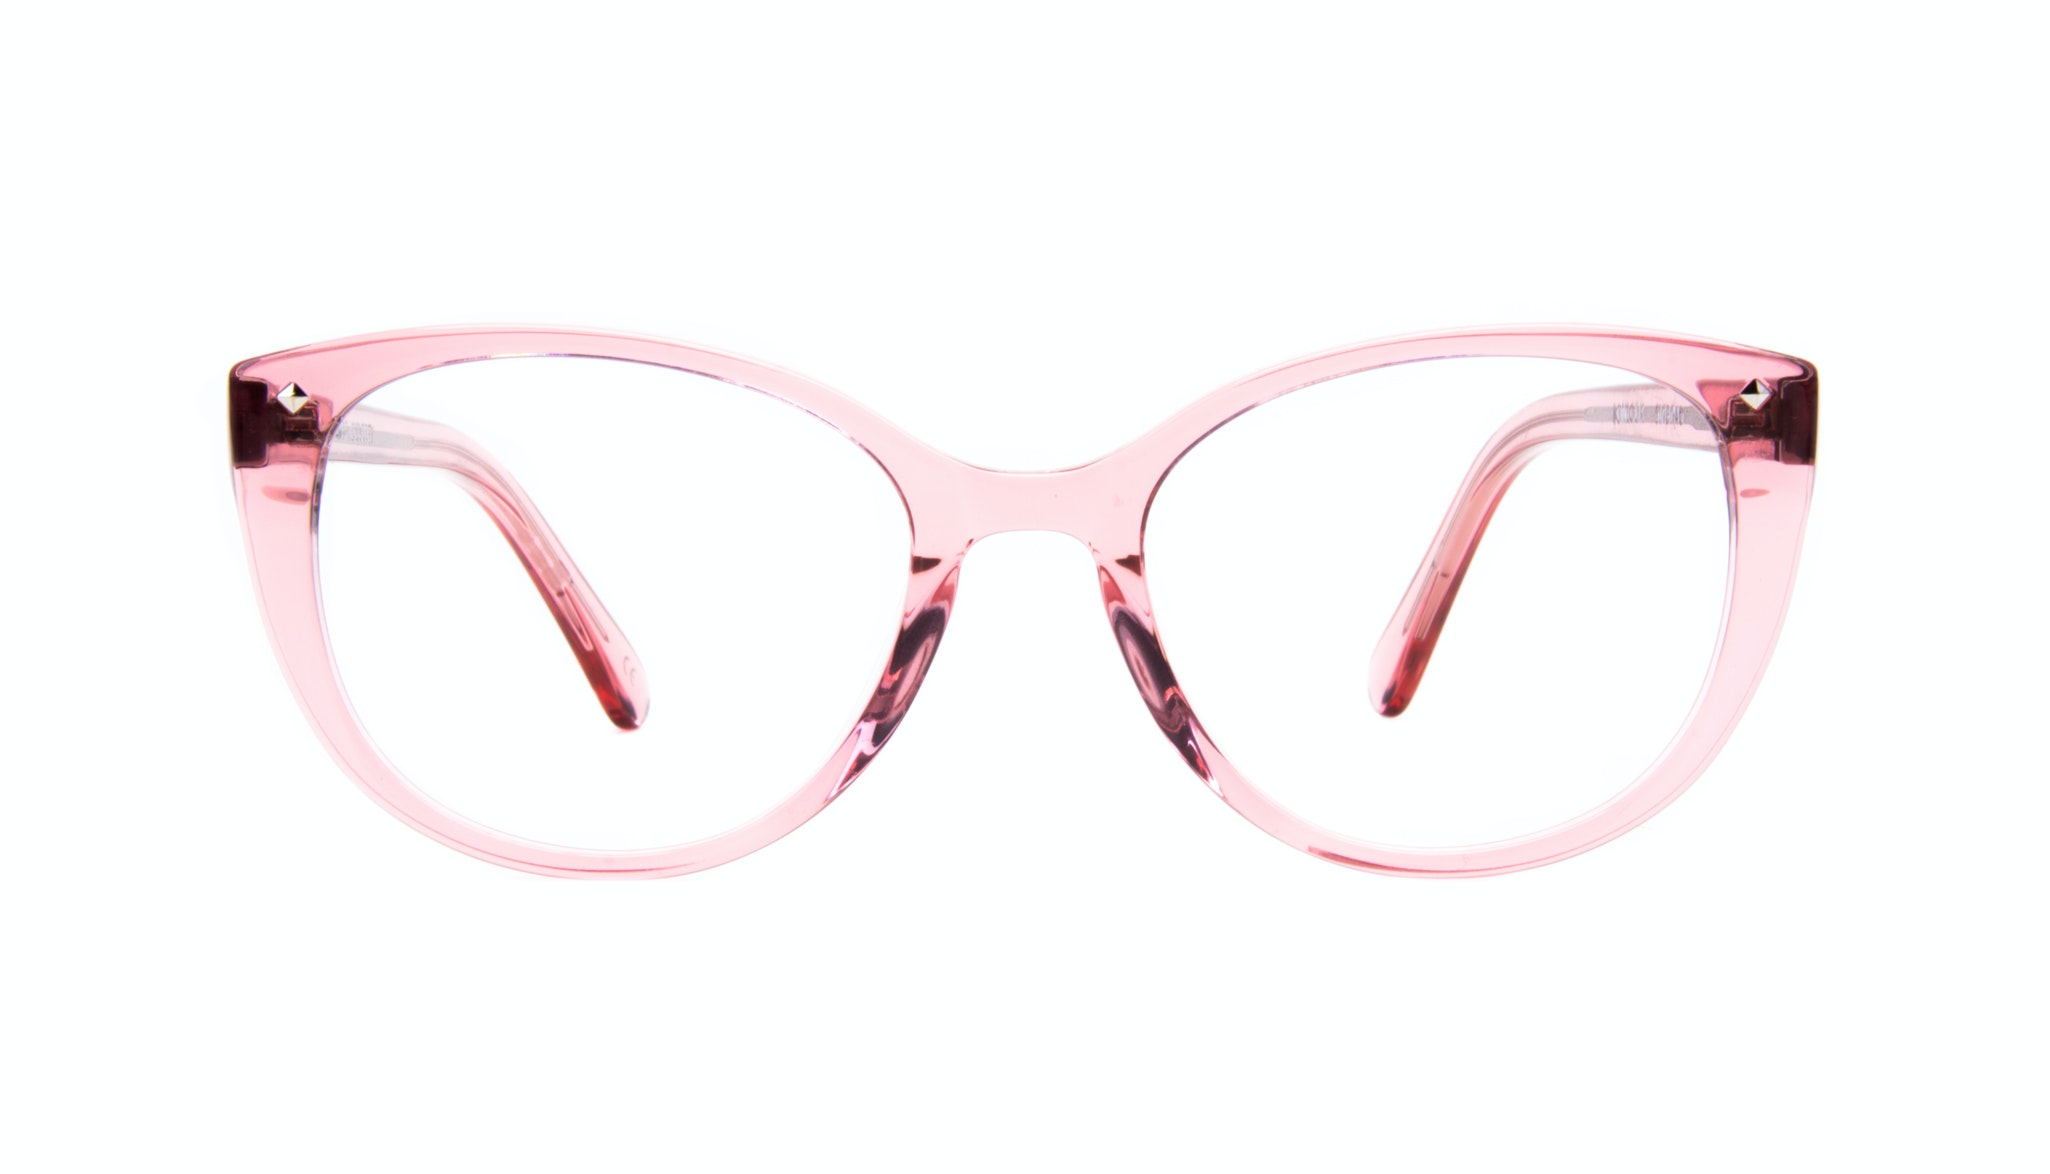 Affordable Fashion Glasses Cat Eye Eyeglasses Women Mist Odyssey